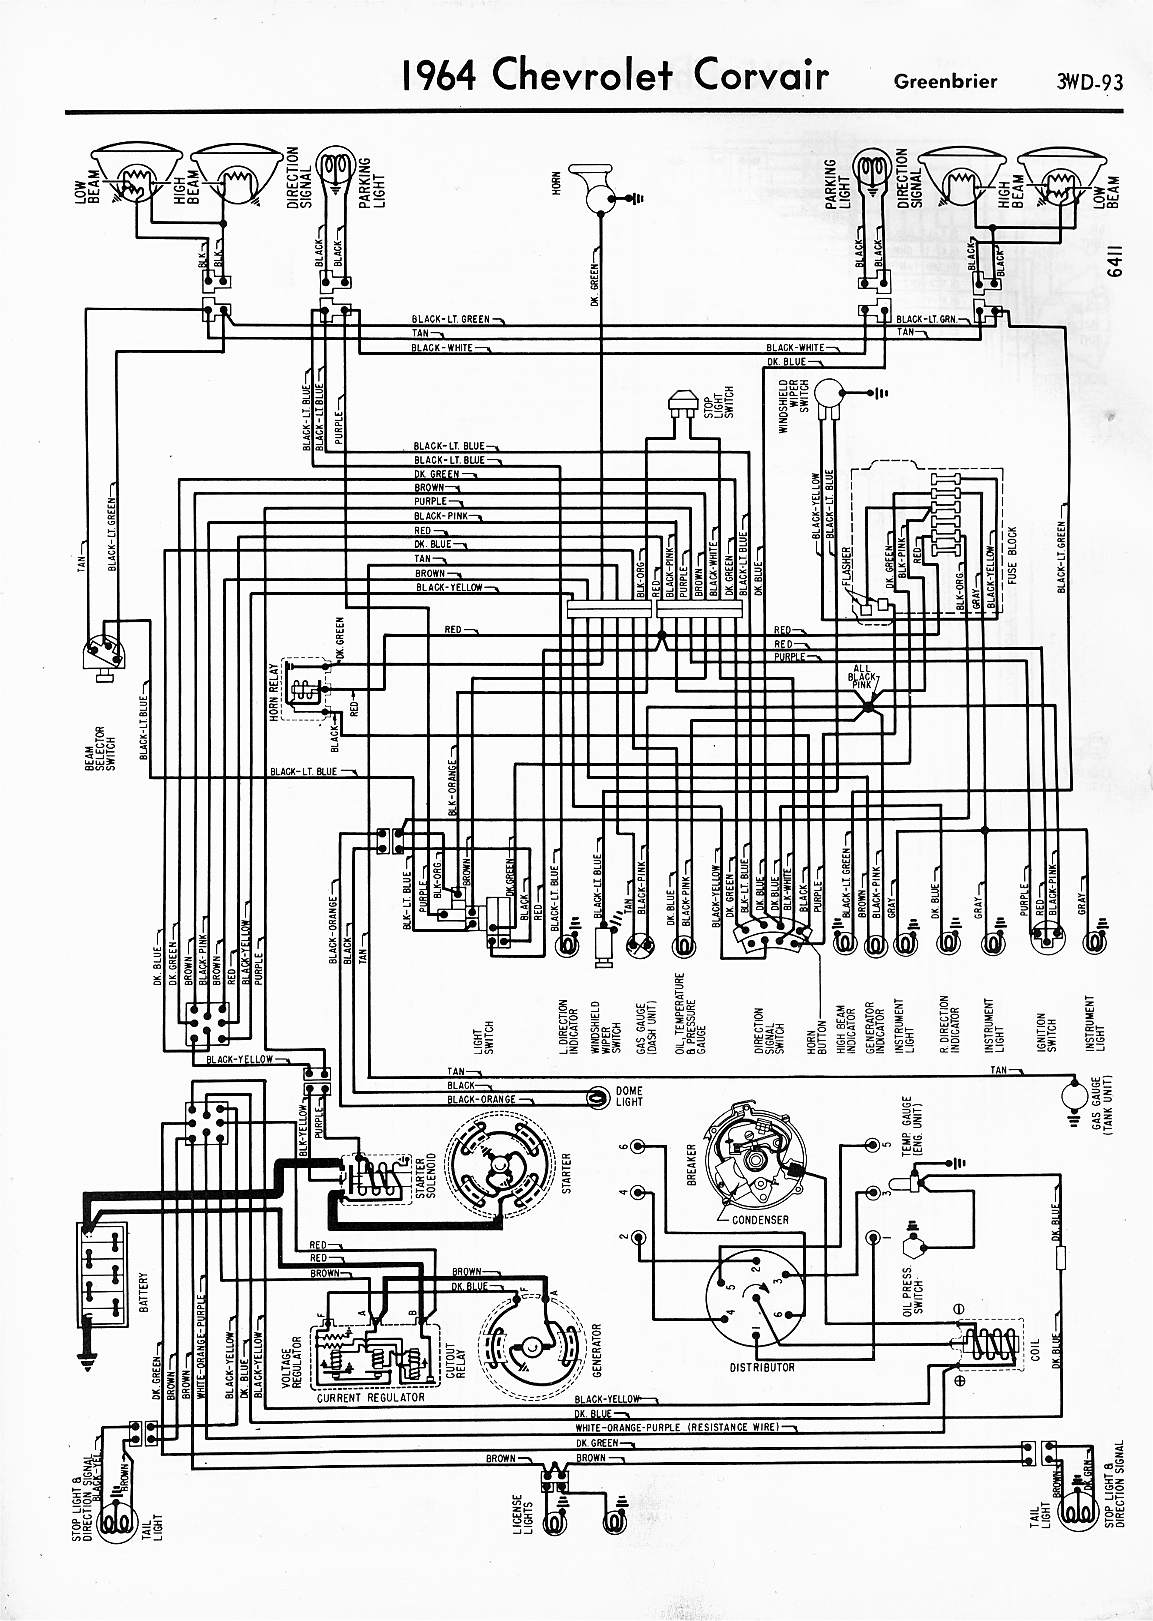 1964 chevy nova wiring diagram 2002 kia sportage exhaust free engine image